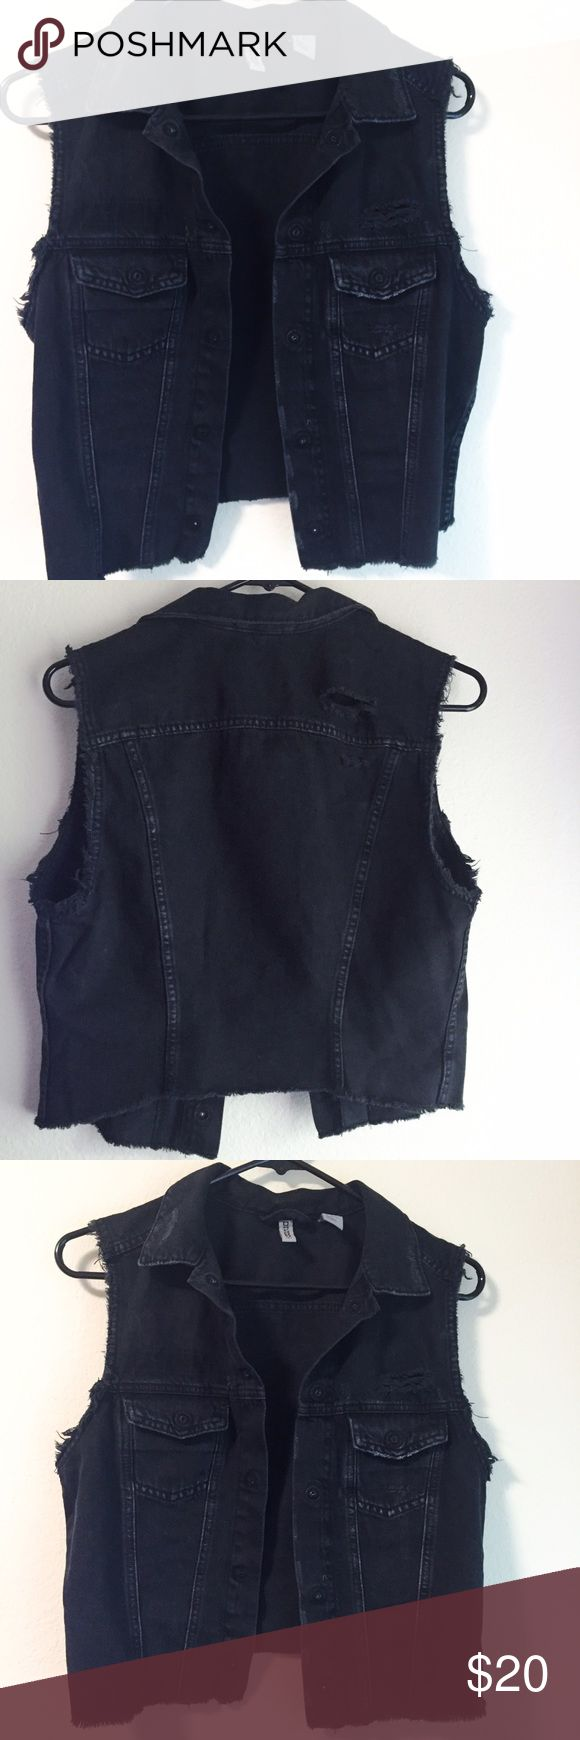 Black Denim Vest from H&M Black denim vest from H&M's divided. Falls to your natural waist and is a size 12(L) it came distressed with a couple artfully places holes. It is open faced (no buttons) and is a perfect layering piece. Only worn out a couple of times. #grunge #Coachella #punk #festival #goth #metal H&M Jackets & Coats Vests